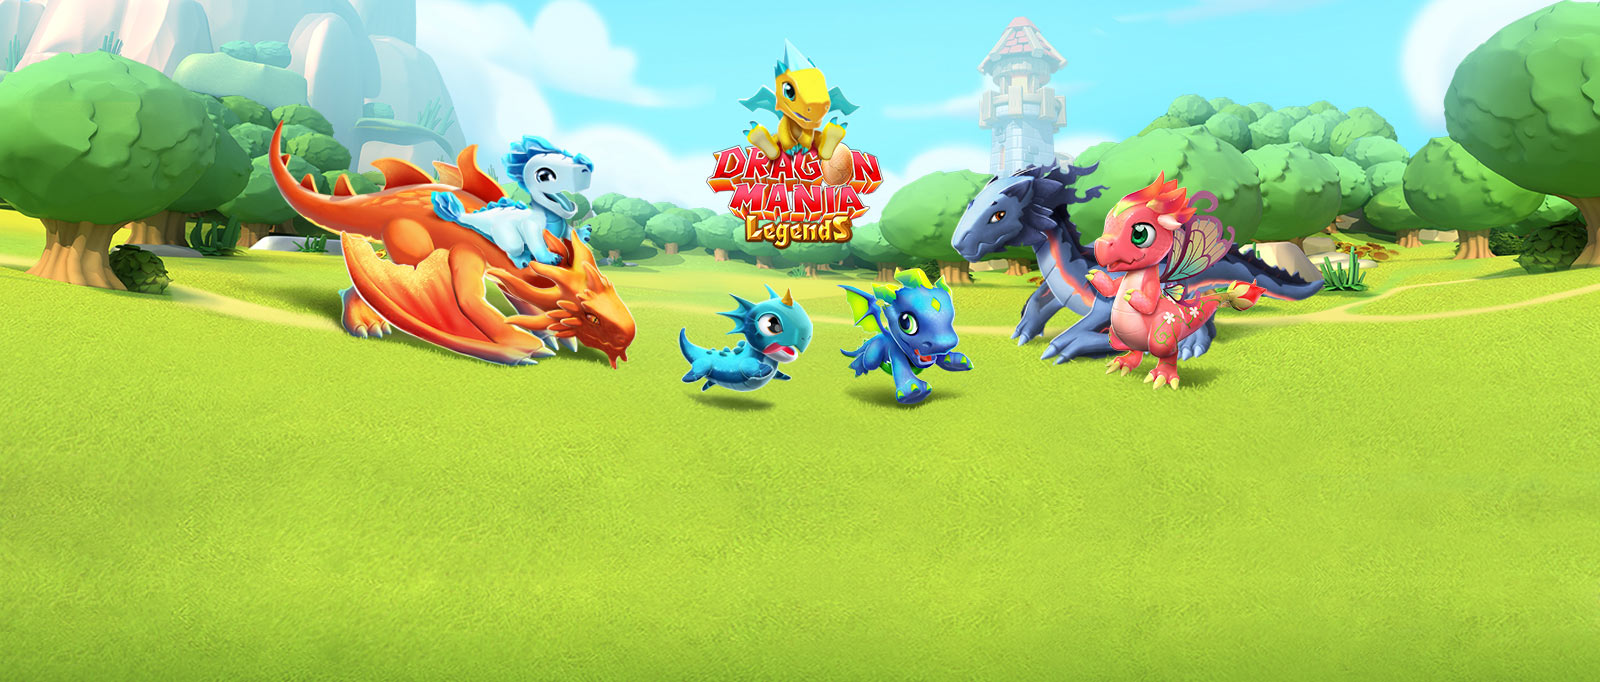 لعبة dragon mania legend مهكرة